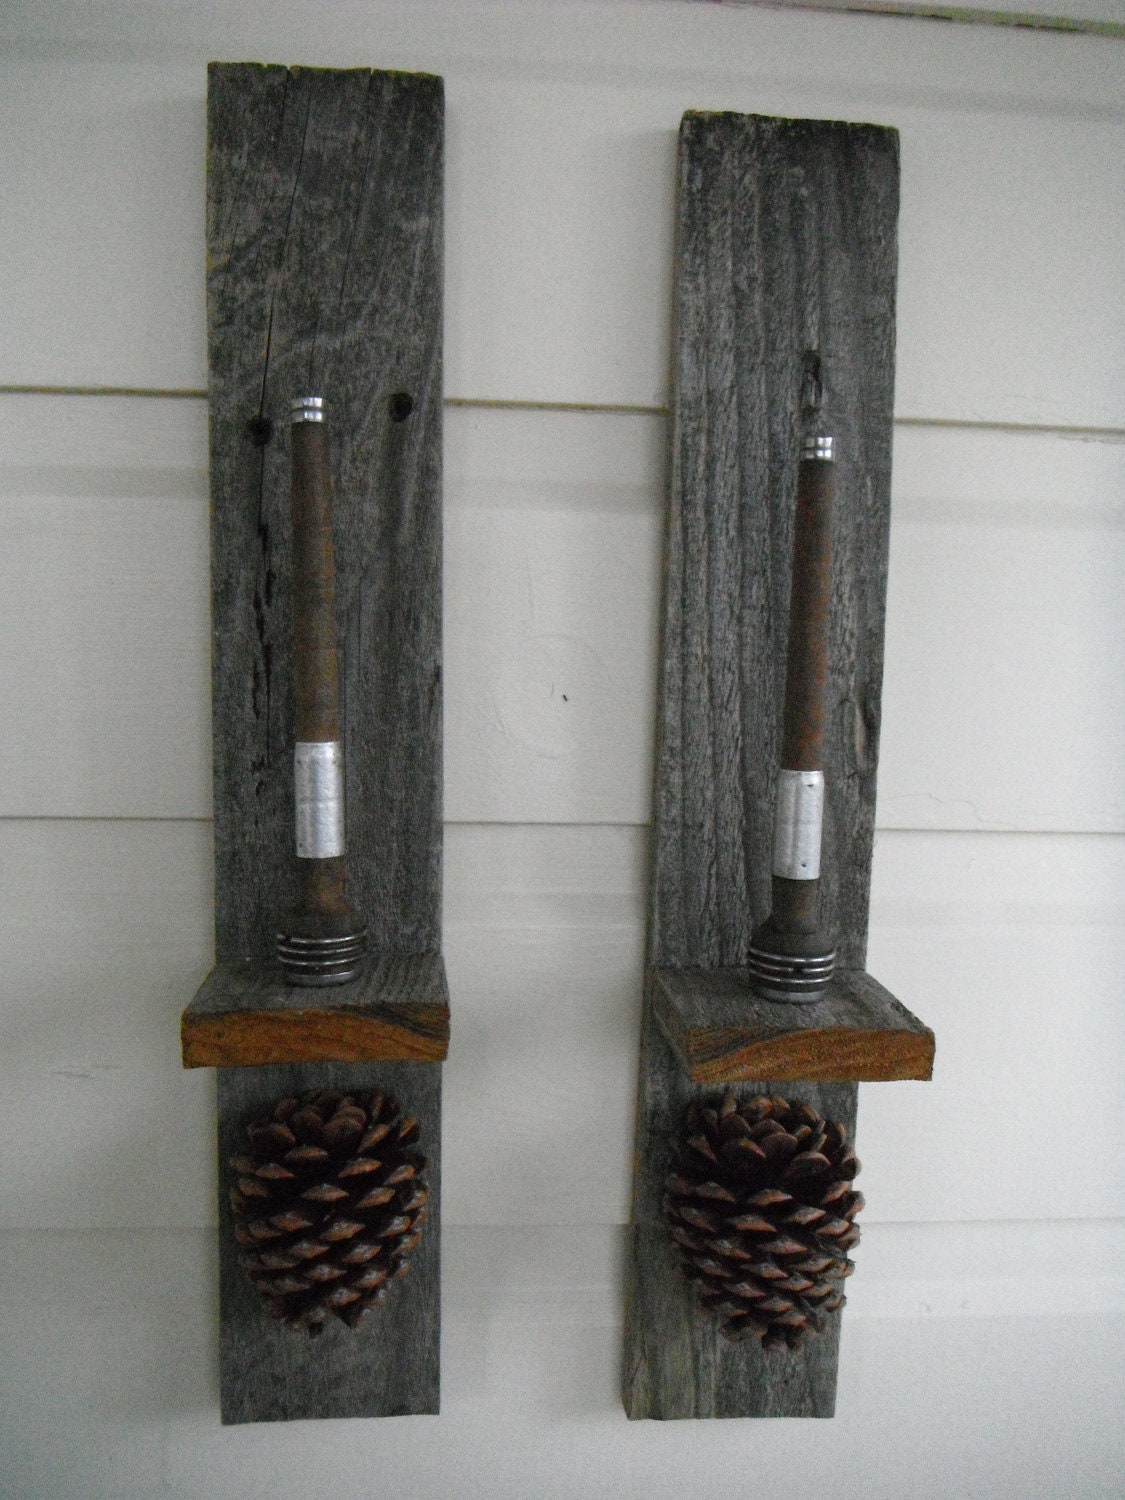 Popular items for old wood sconce on Etsy